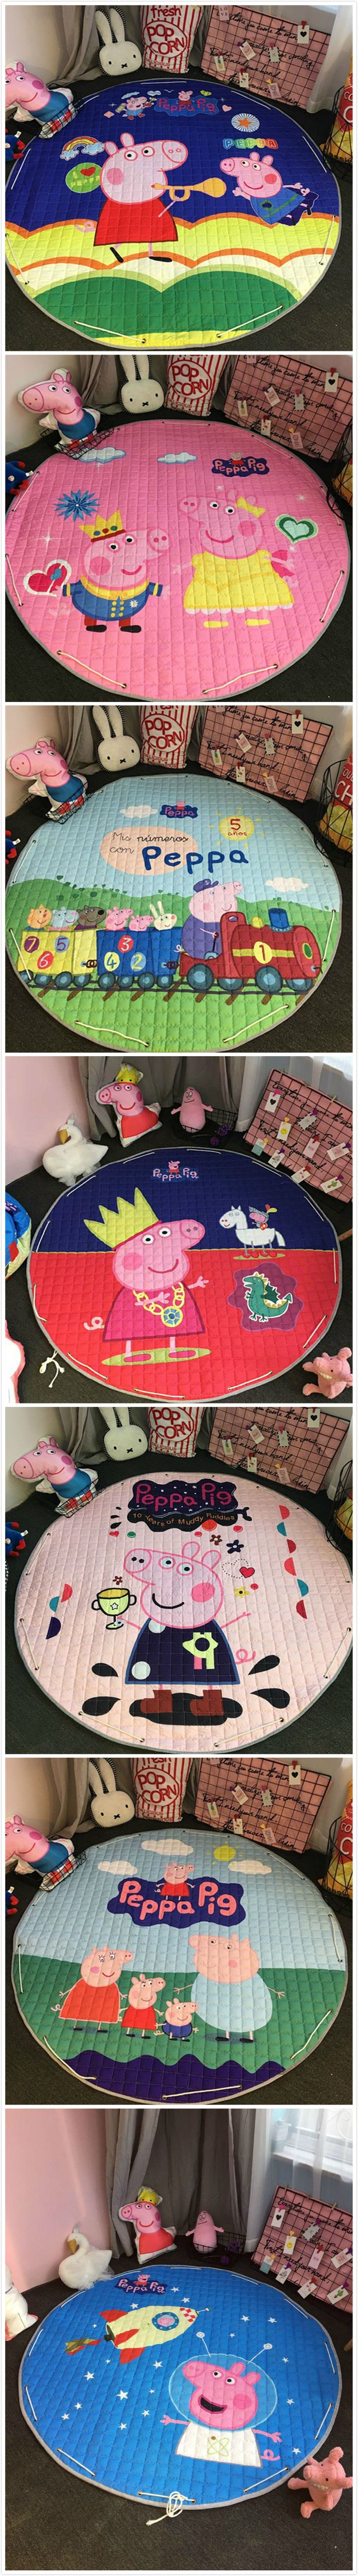 mats funny listing cute mat zoom welcome doormat il pig outdoor fullxfull